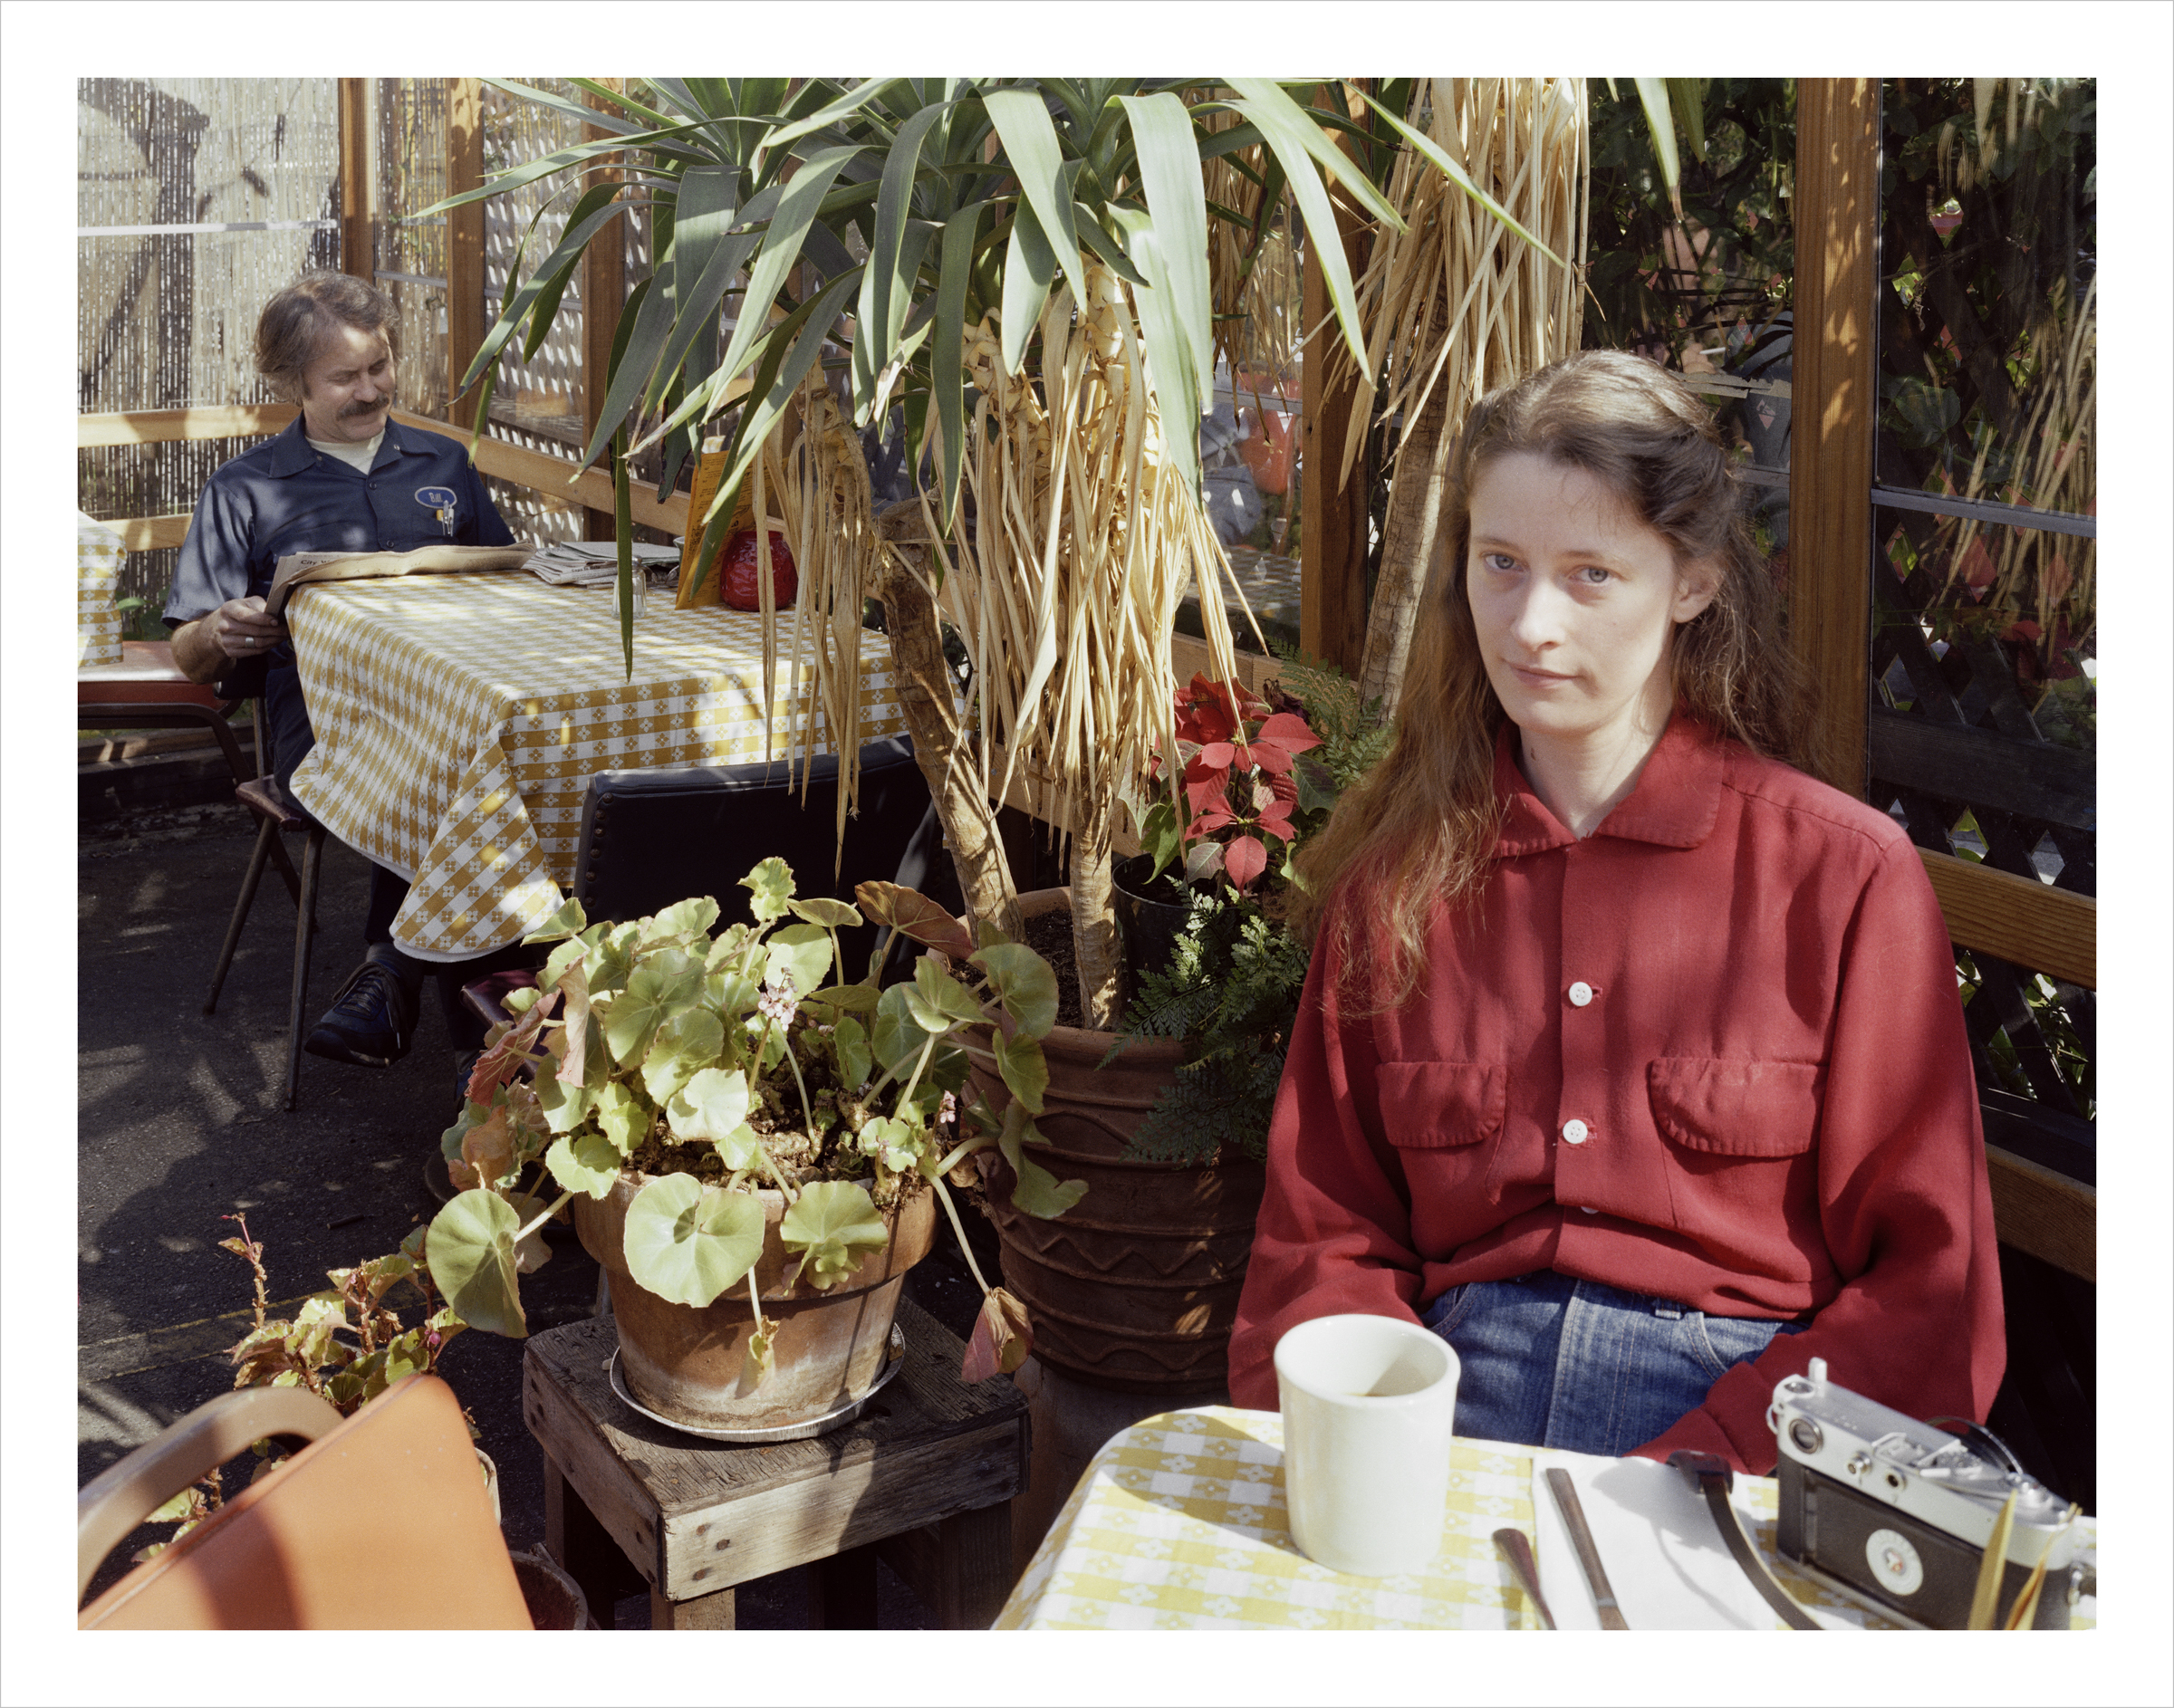 JANET DELANEY Connie Hatch at the Canary Island Diner, 1207 Harrison Street, 1982 Archival Pigment Print, 2016 16 x 20 inches, edition of 5 20 x 24 inches, edition of 2 30 x 40 inches, edition of 2